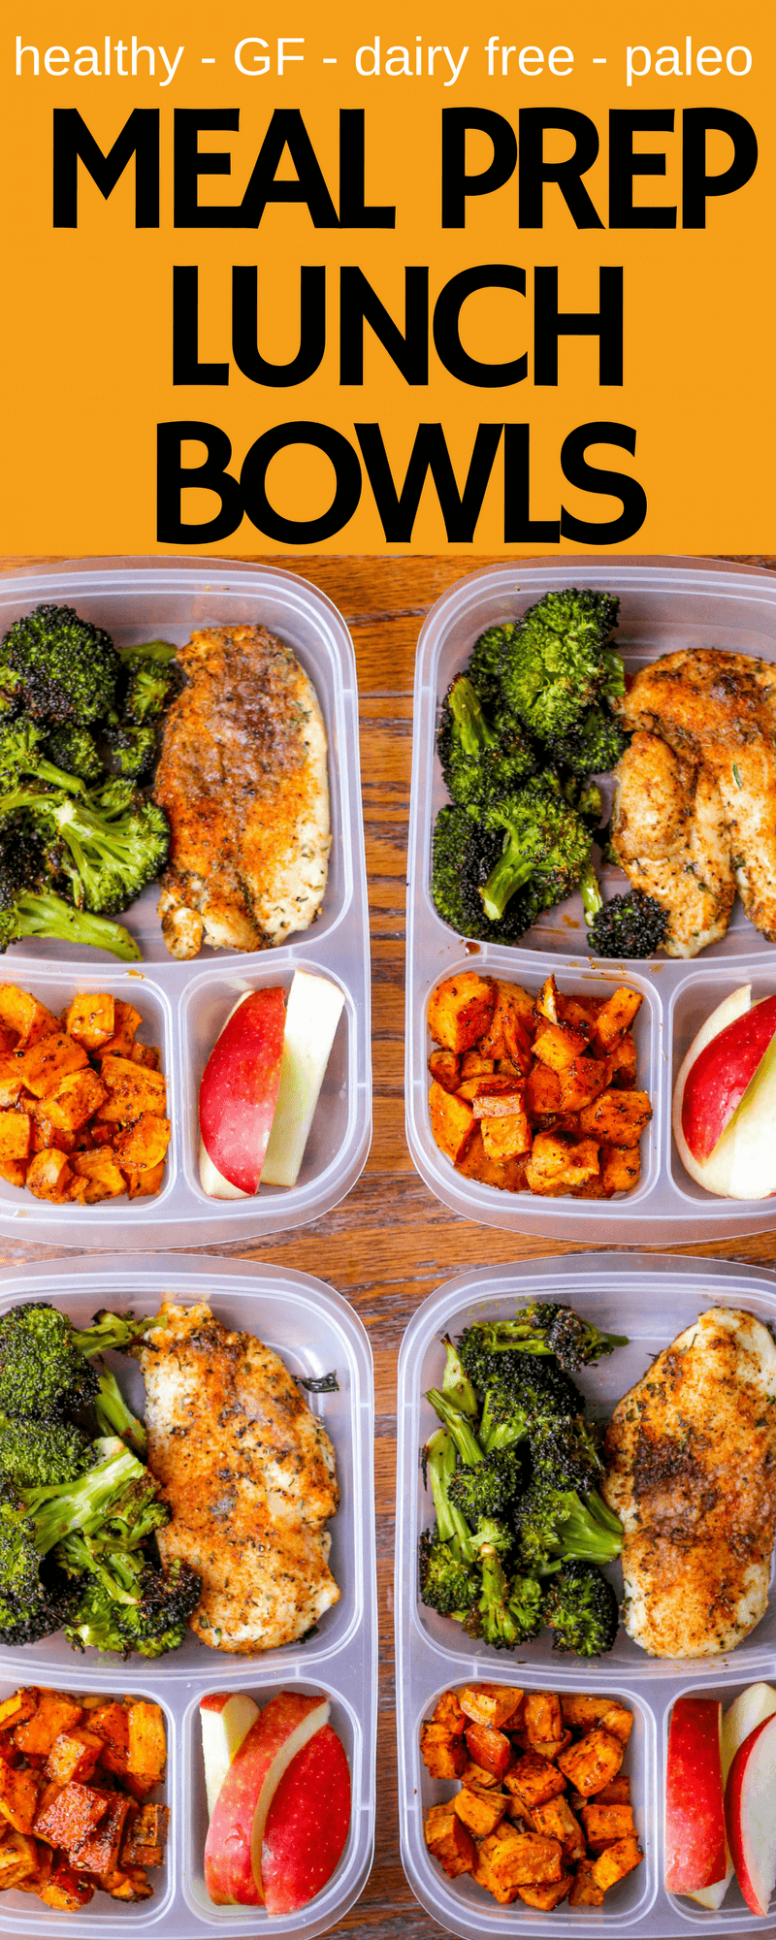 Meal Prep Lunch Bowls with Spicy Chicken, Roasted Lemon ..